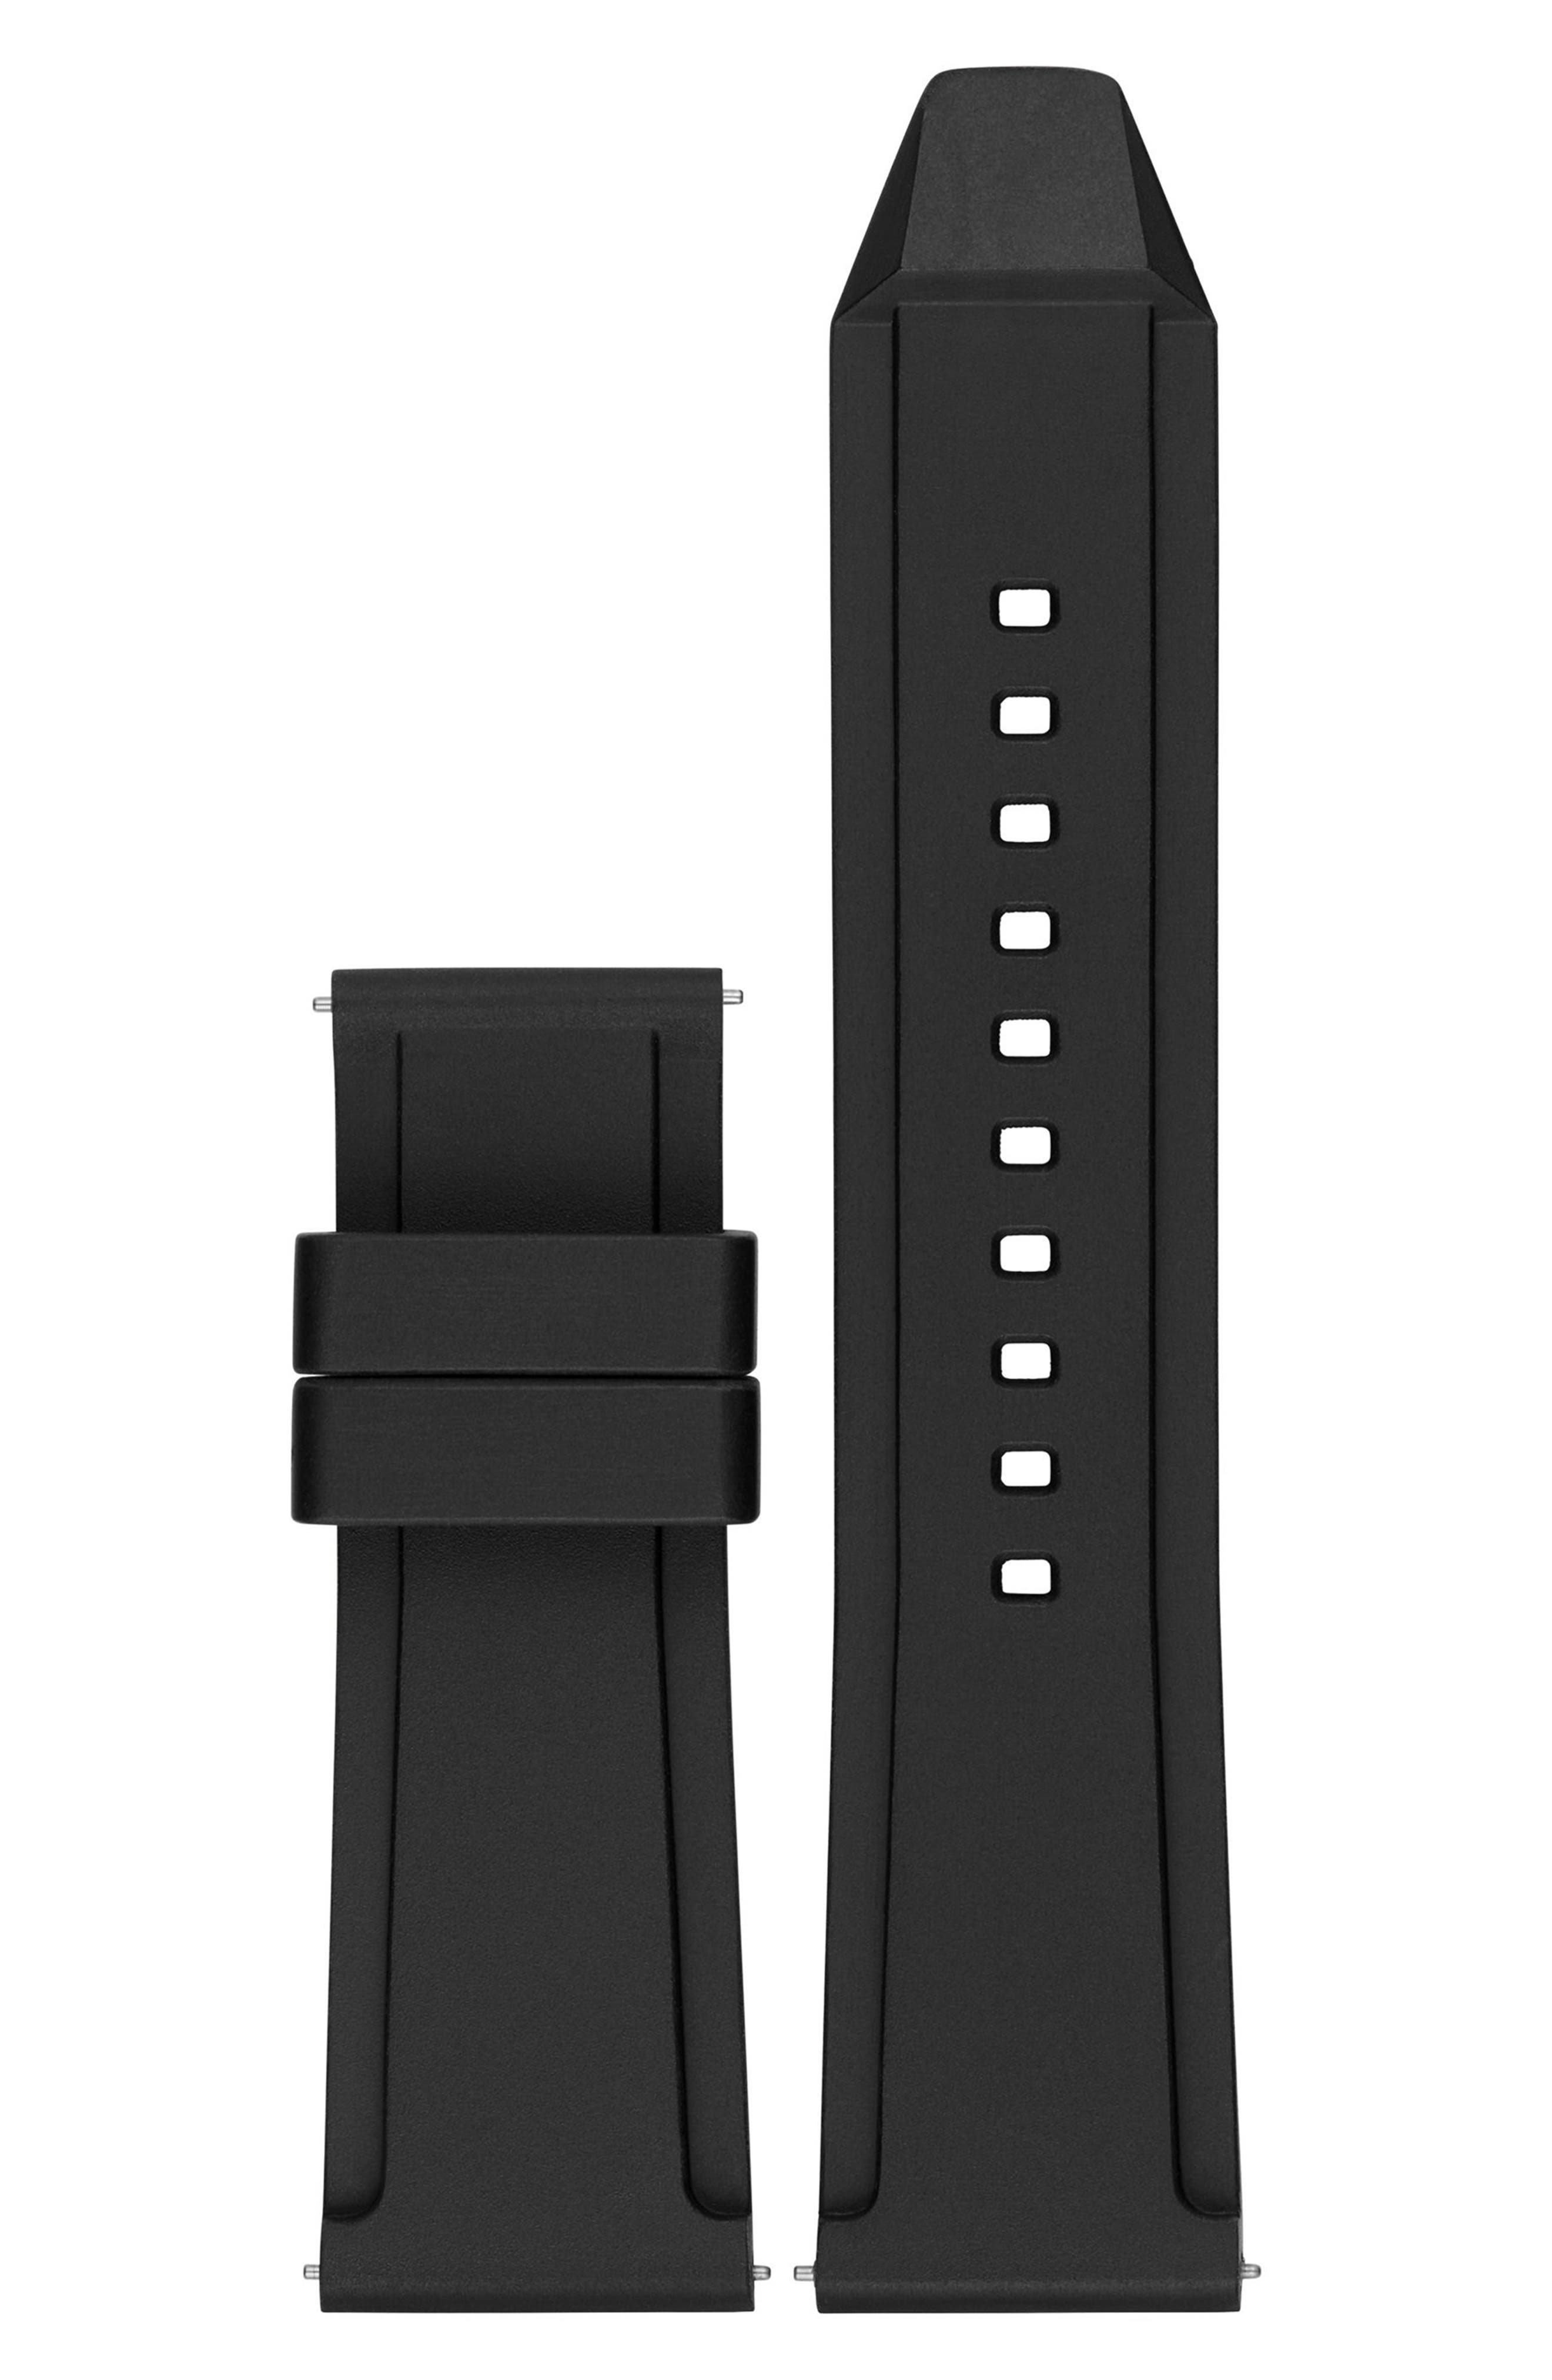 Main Image - Michael Kors Access Grayson 24mm Silicone Watch Strap